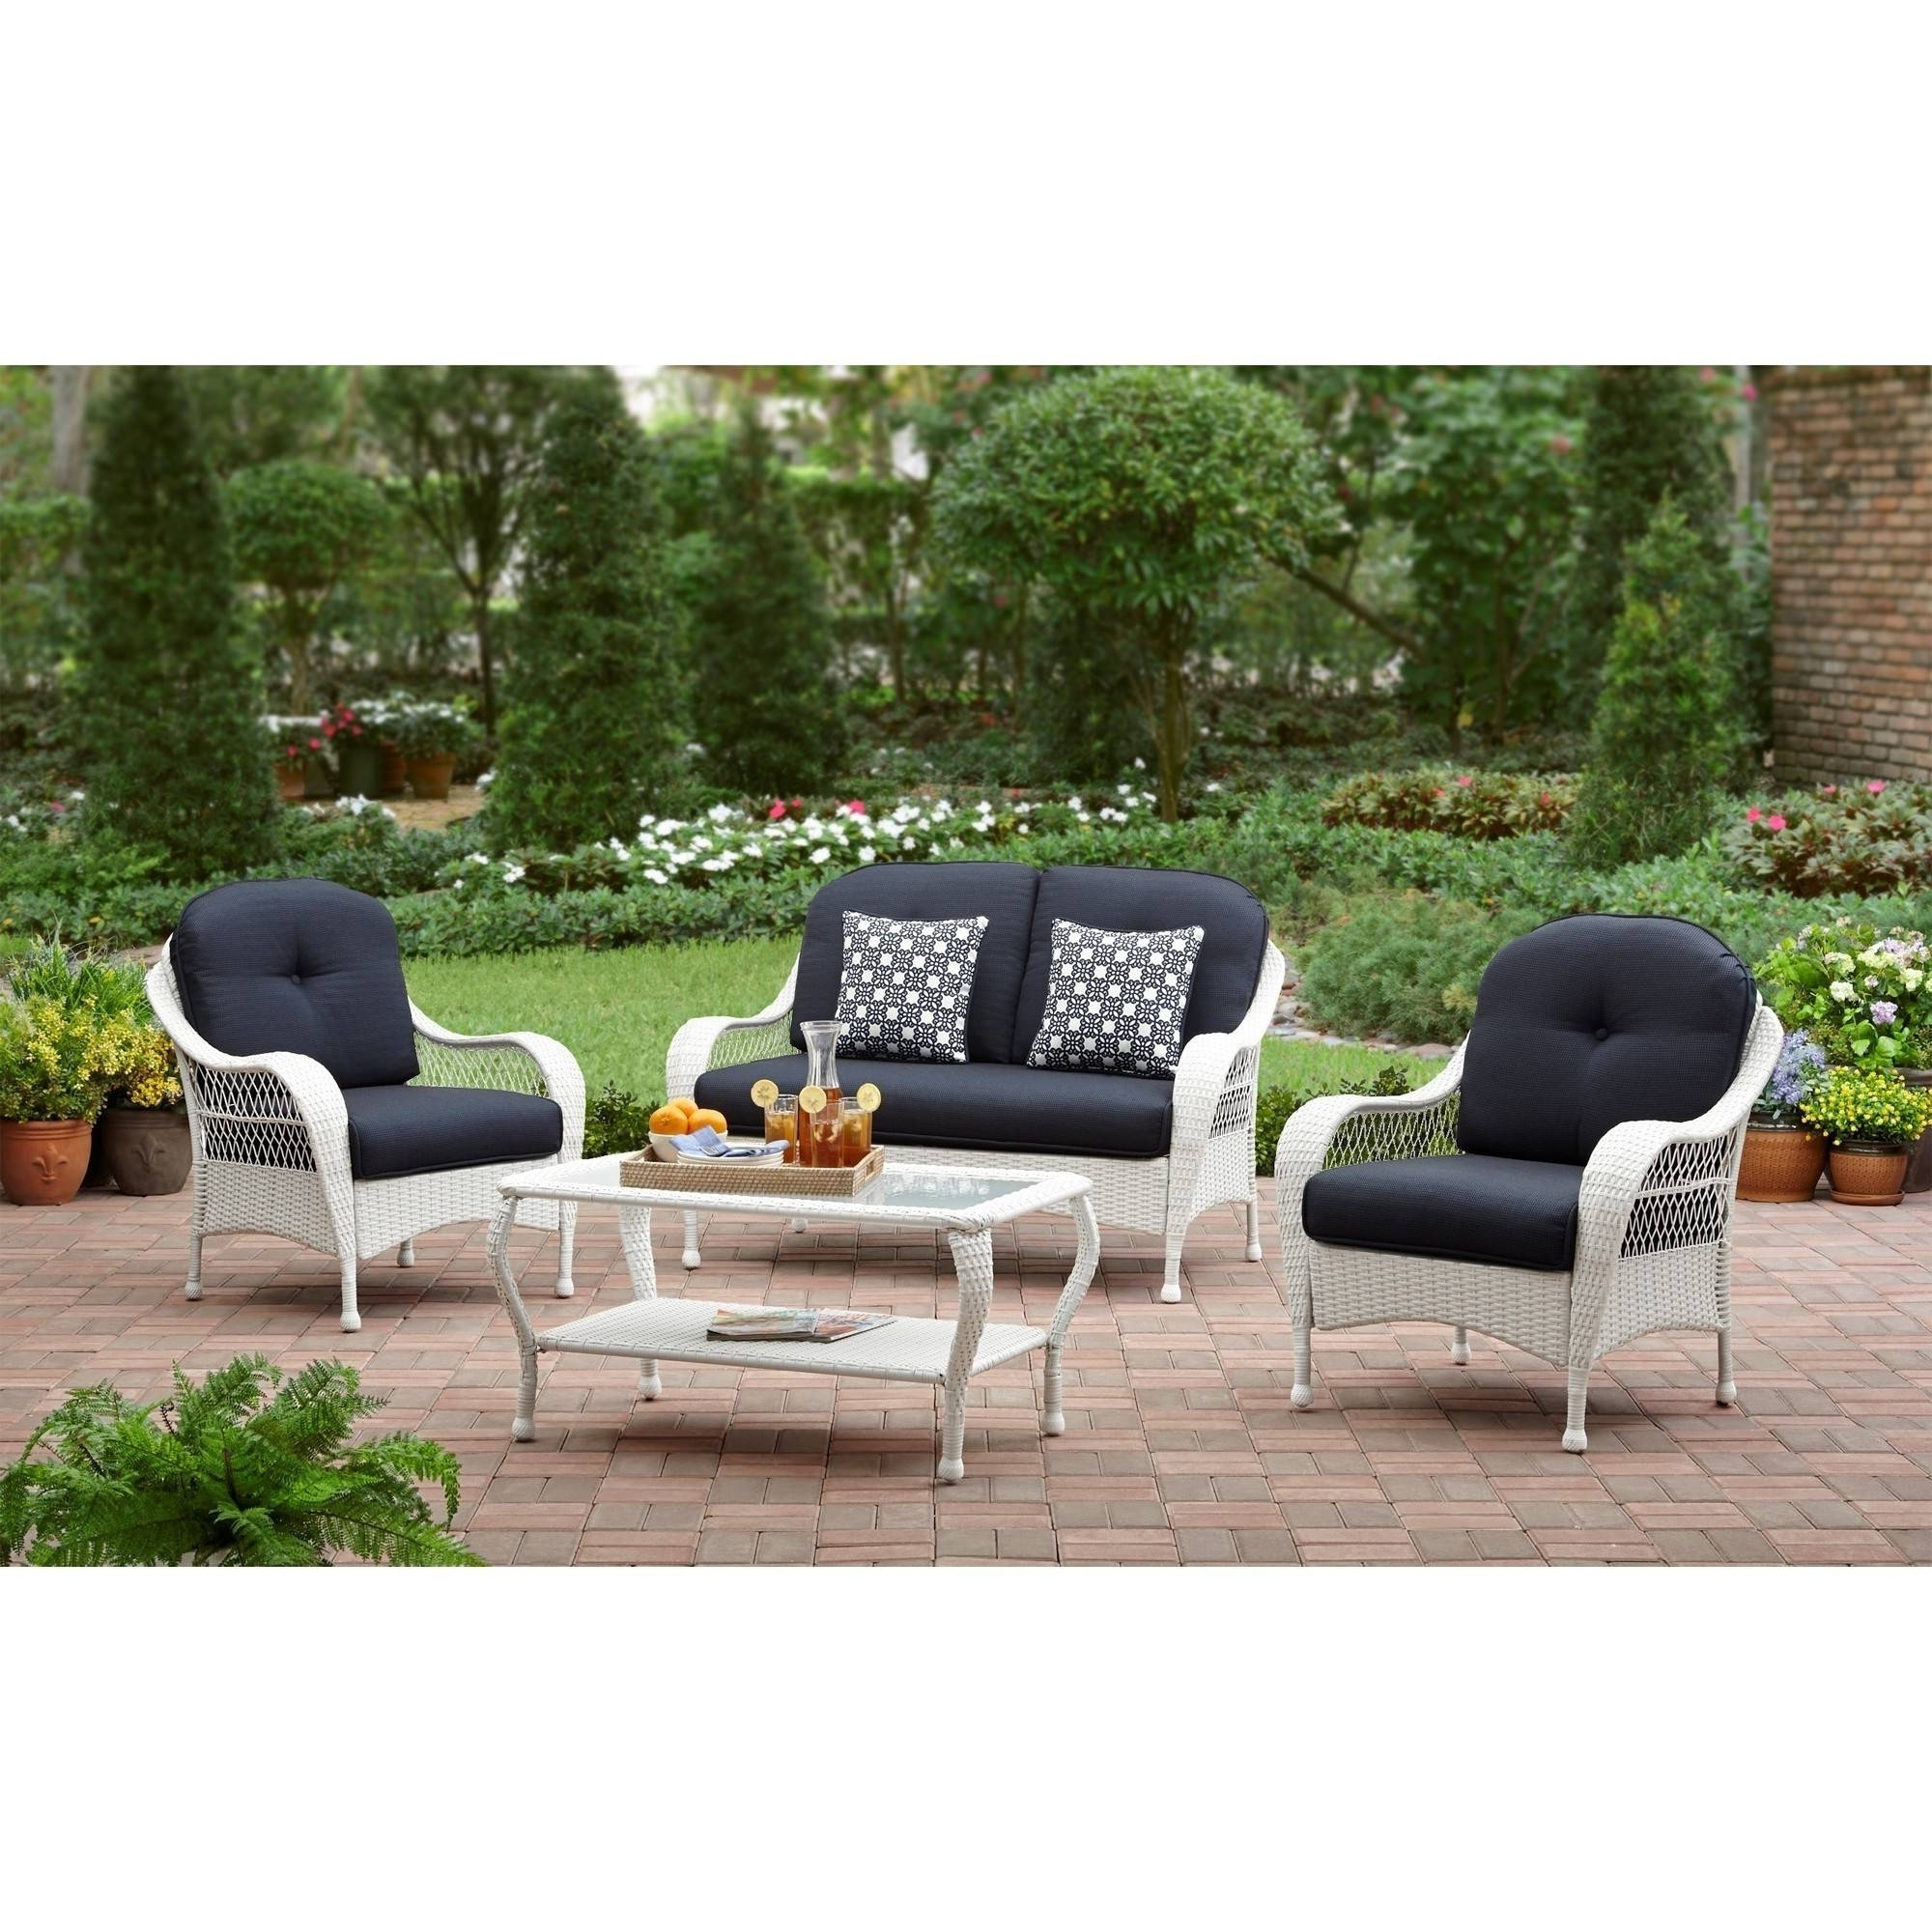 Patio Conversation Sets At Walmart For Fashionable Better Homes And Gardens Azalea Ridge Outdoor Patio Conversation Set (View 11 of 20)